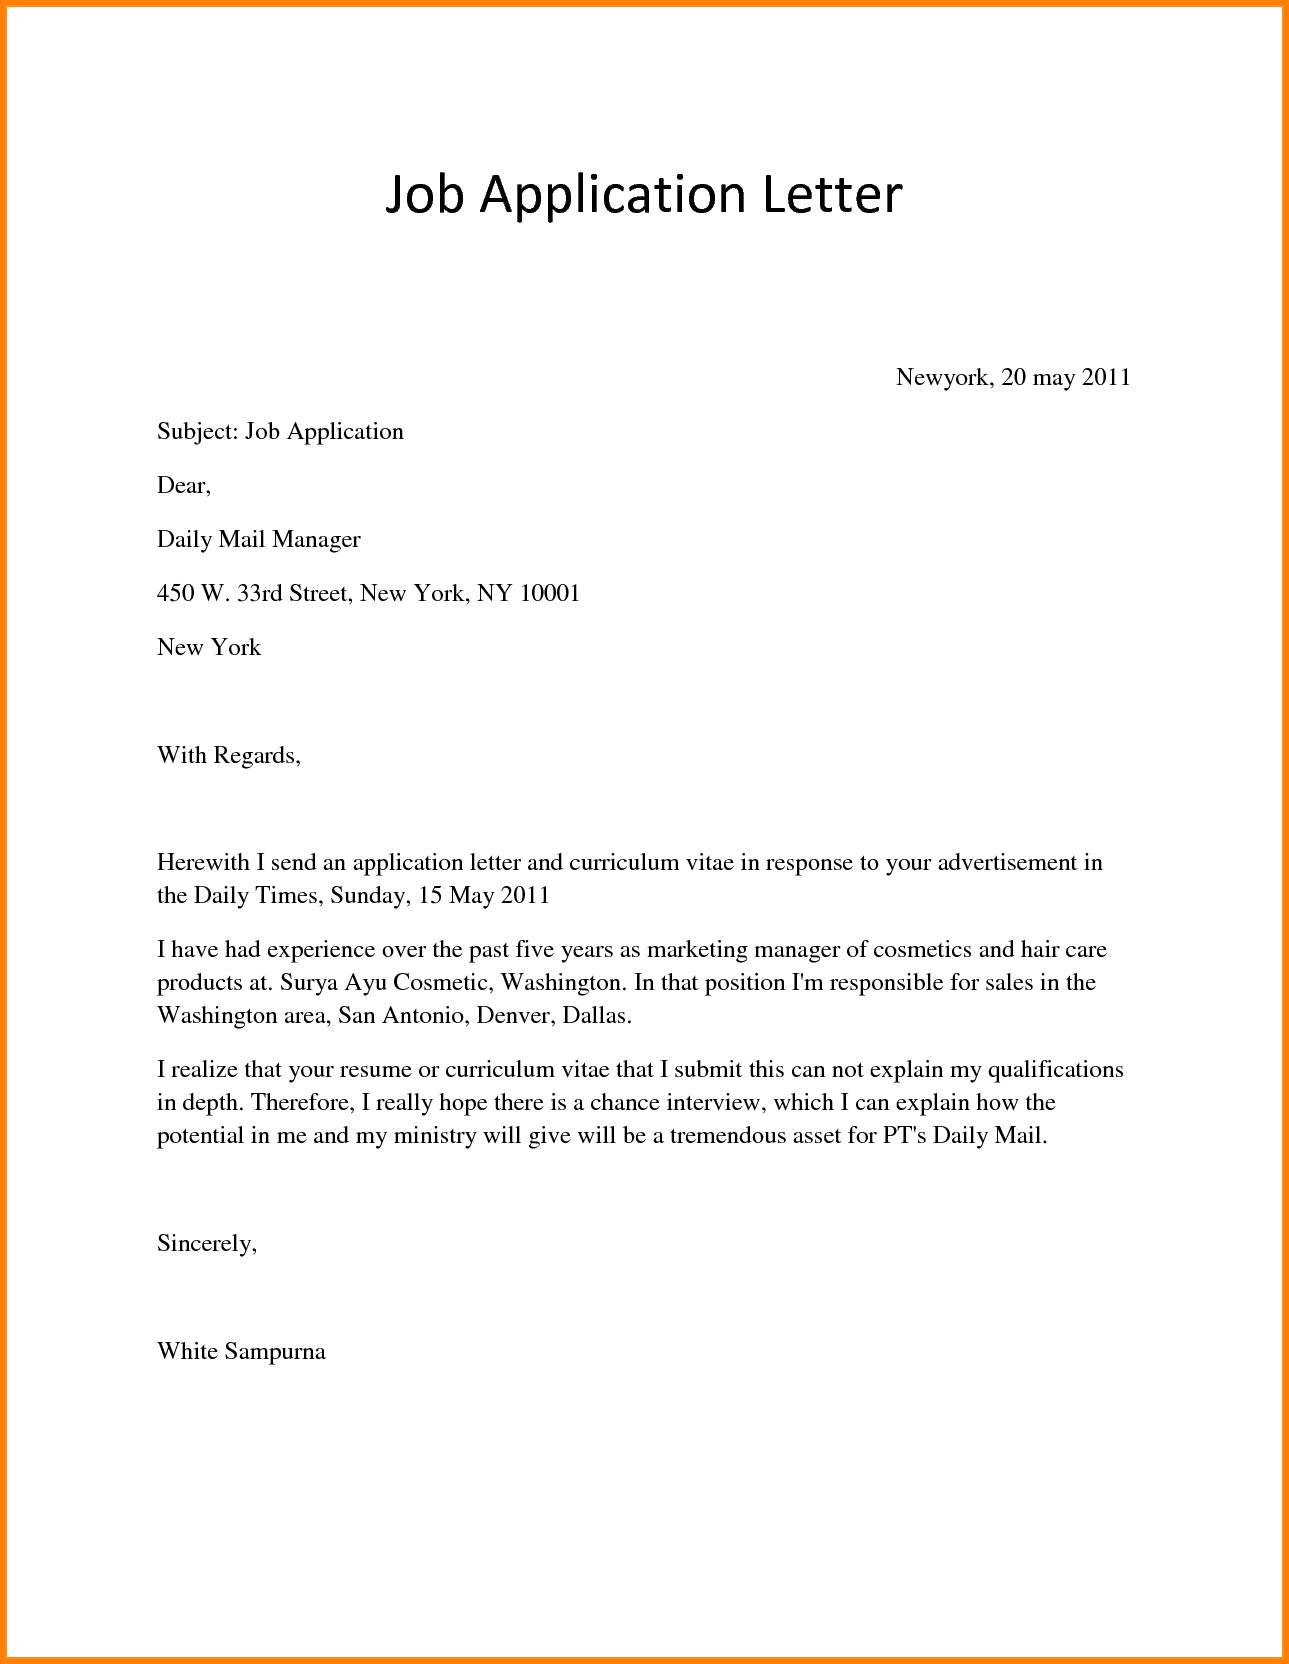 10 Application Letter For Any Position Legal Resumed Simple Job Application Letter Simple Application Letter Application Letter For Employment